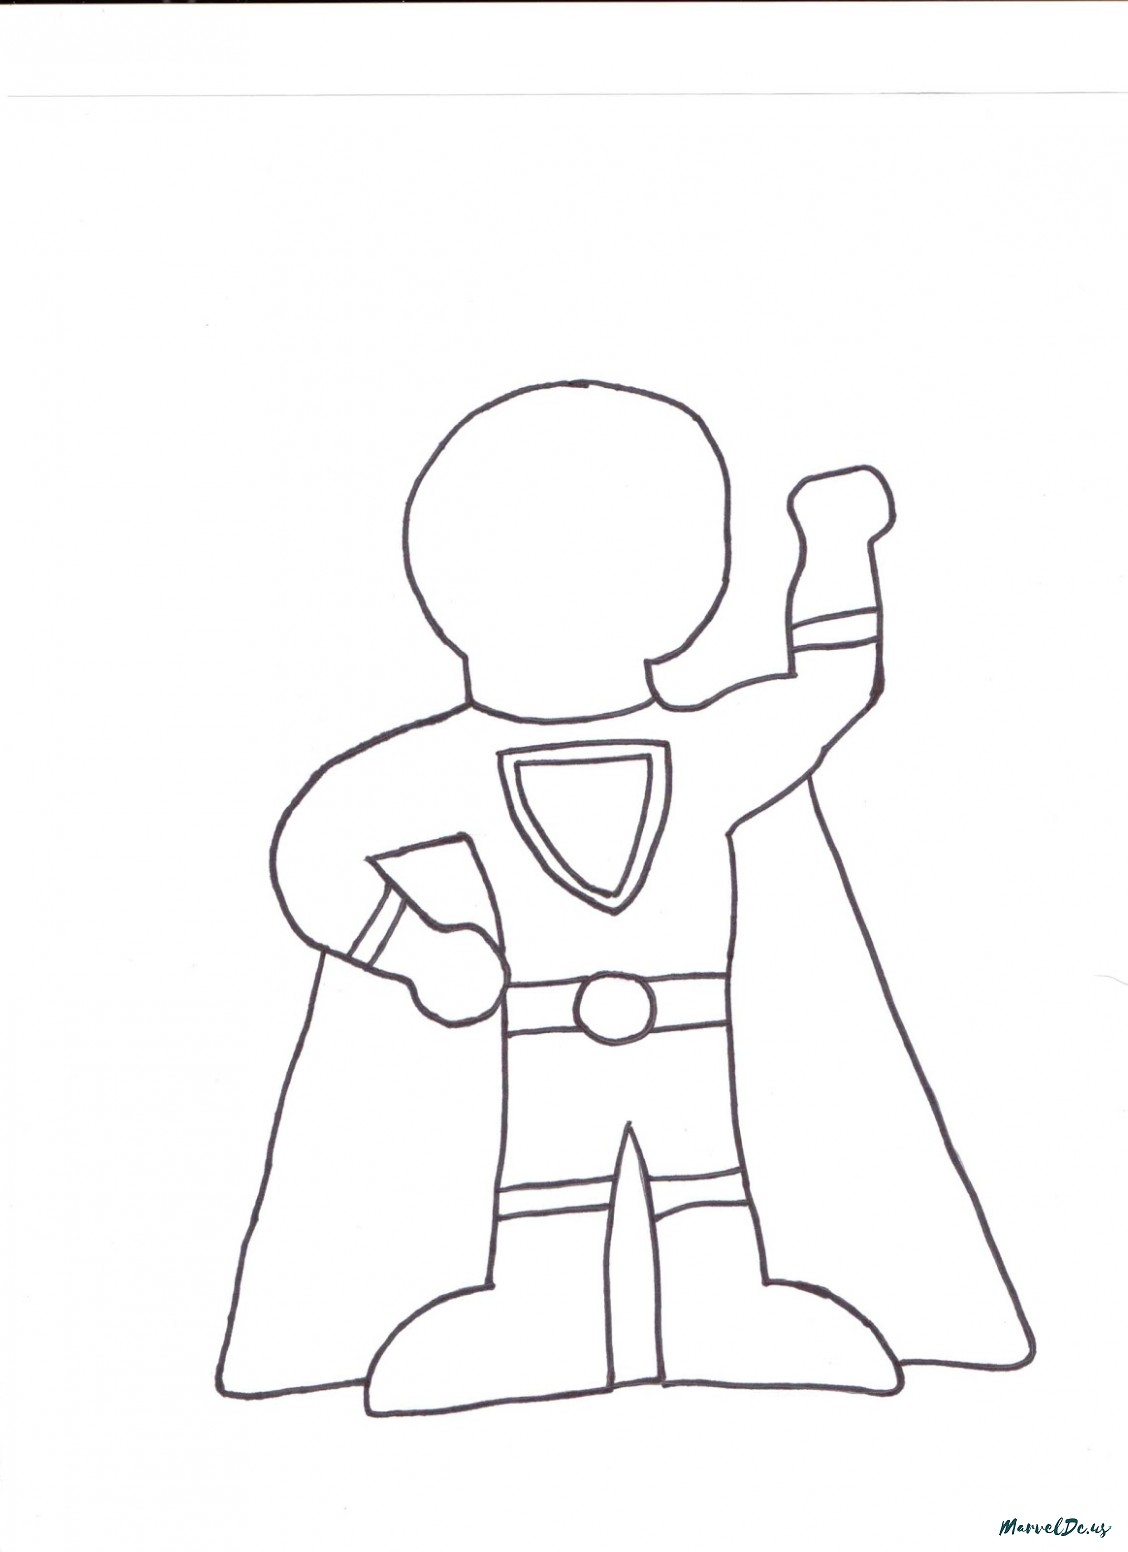 1128x1552 19 Reasons Why Superhero Drawing Template For Kids Is Common